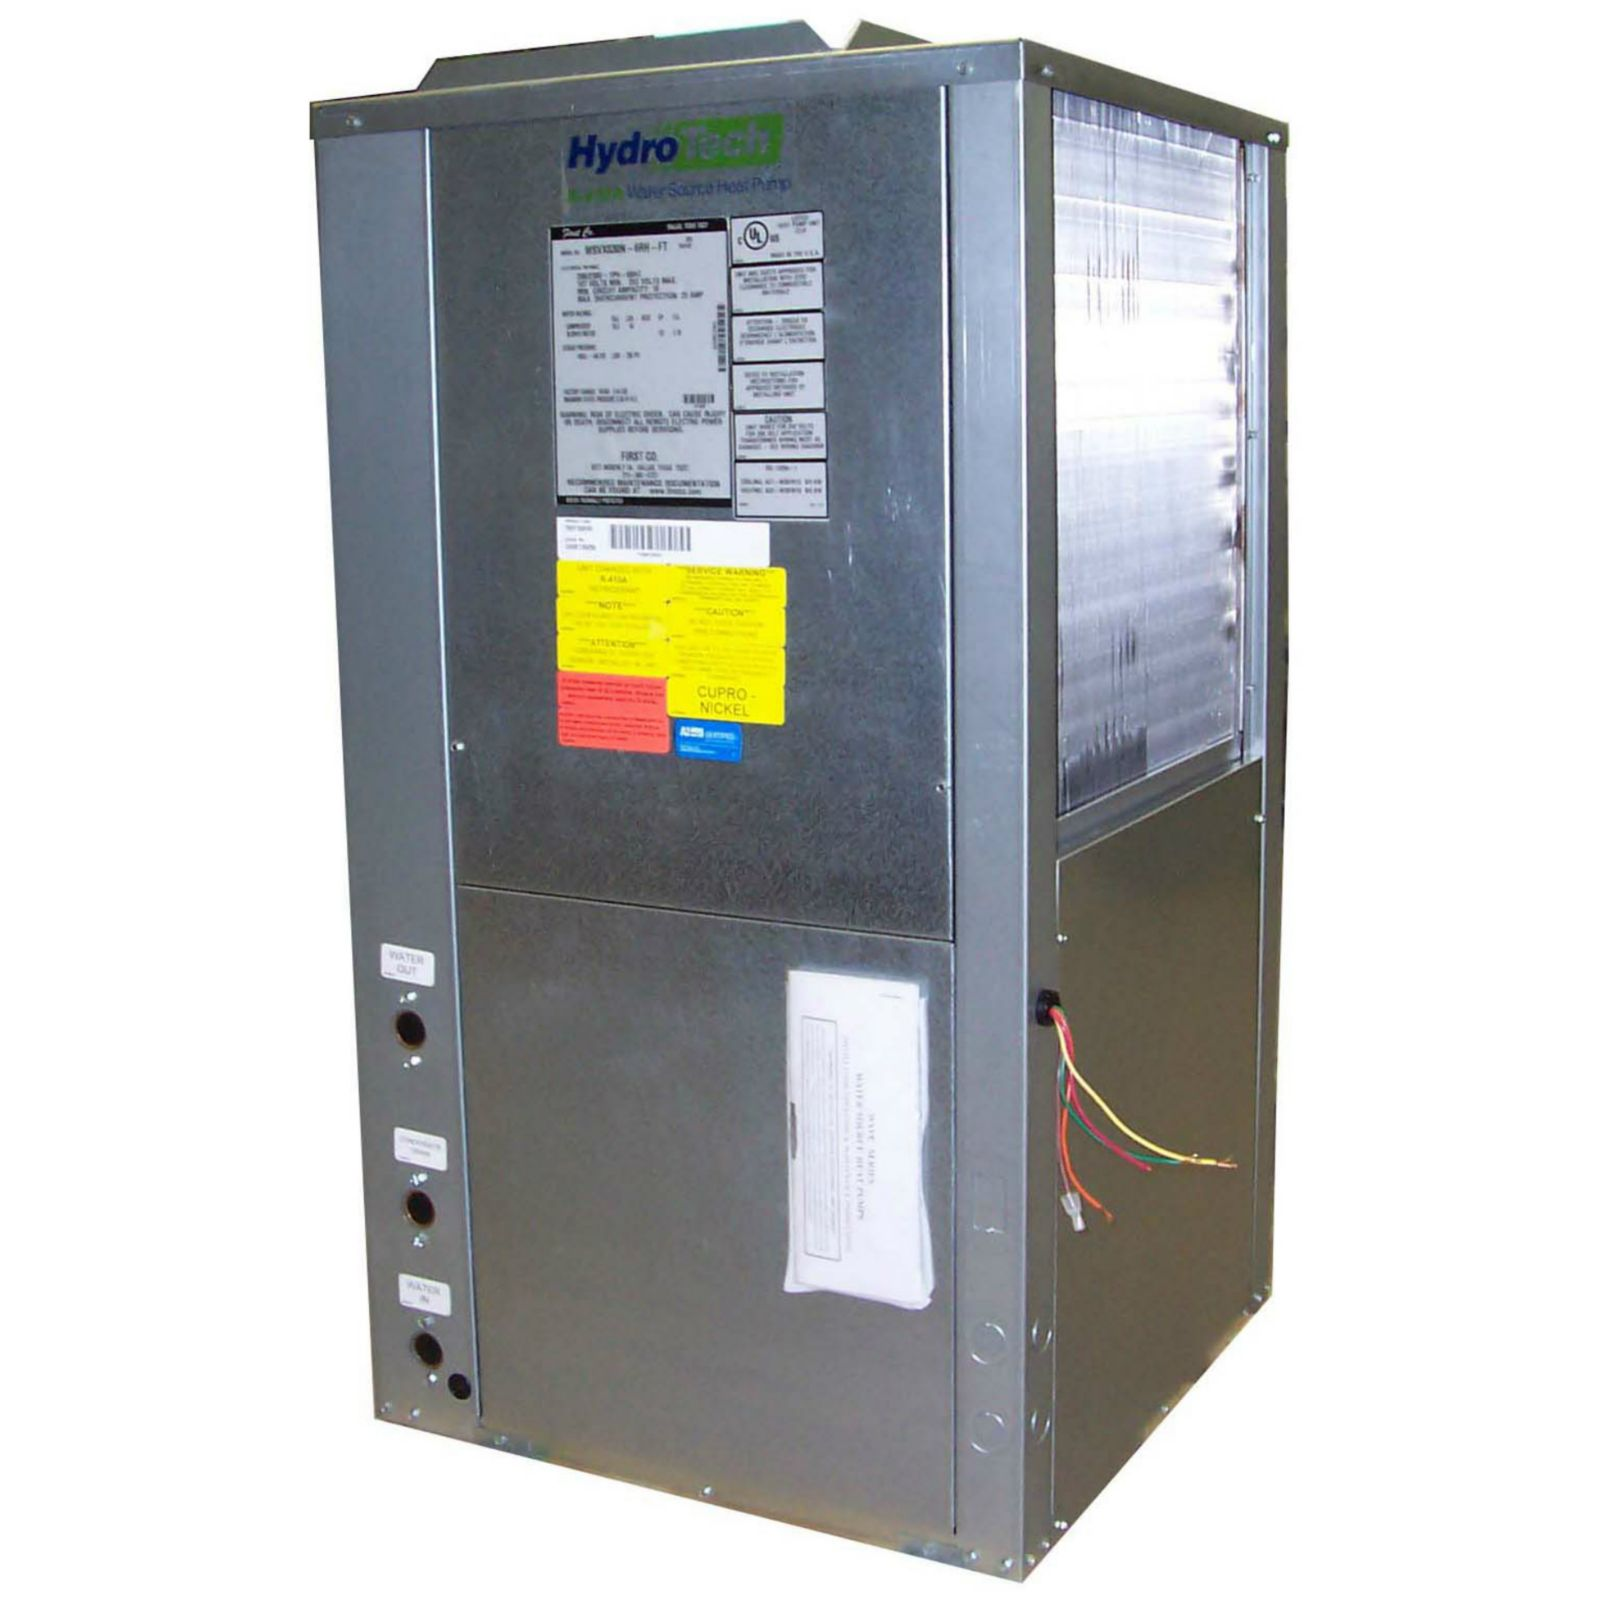 First Co. WSVC060 C E LH FT - Vertical Water Source Heat Pump, 5 Ton, Copper, Left Hand, Top Discharge, 208-230V/3 Phase